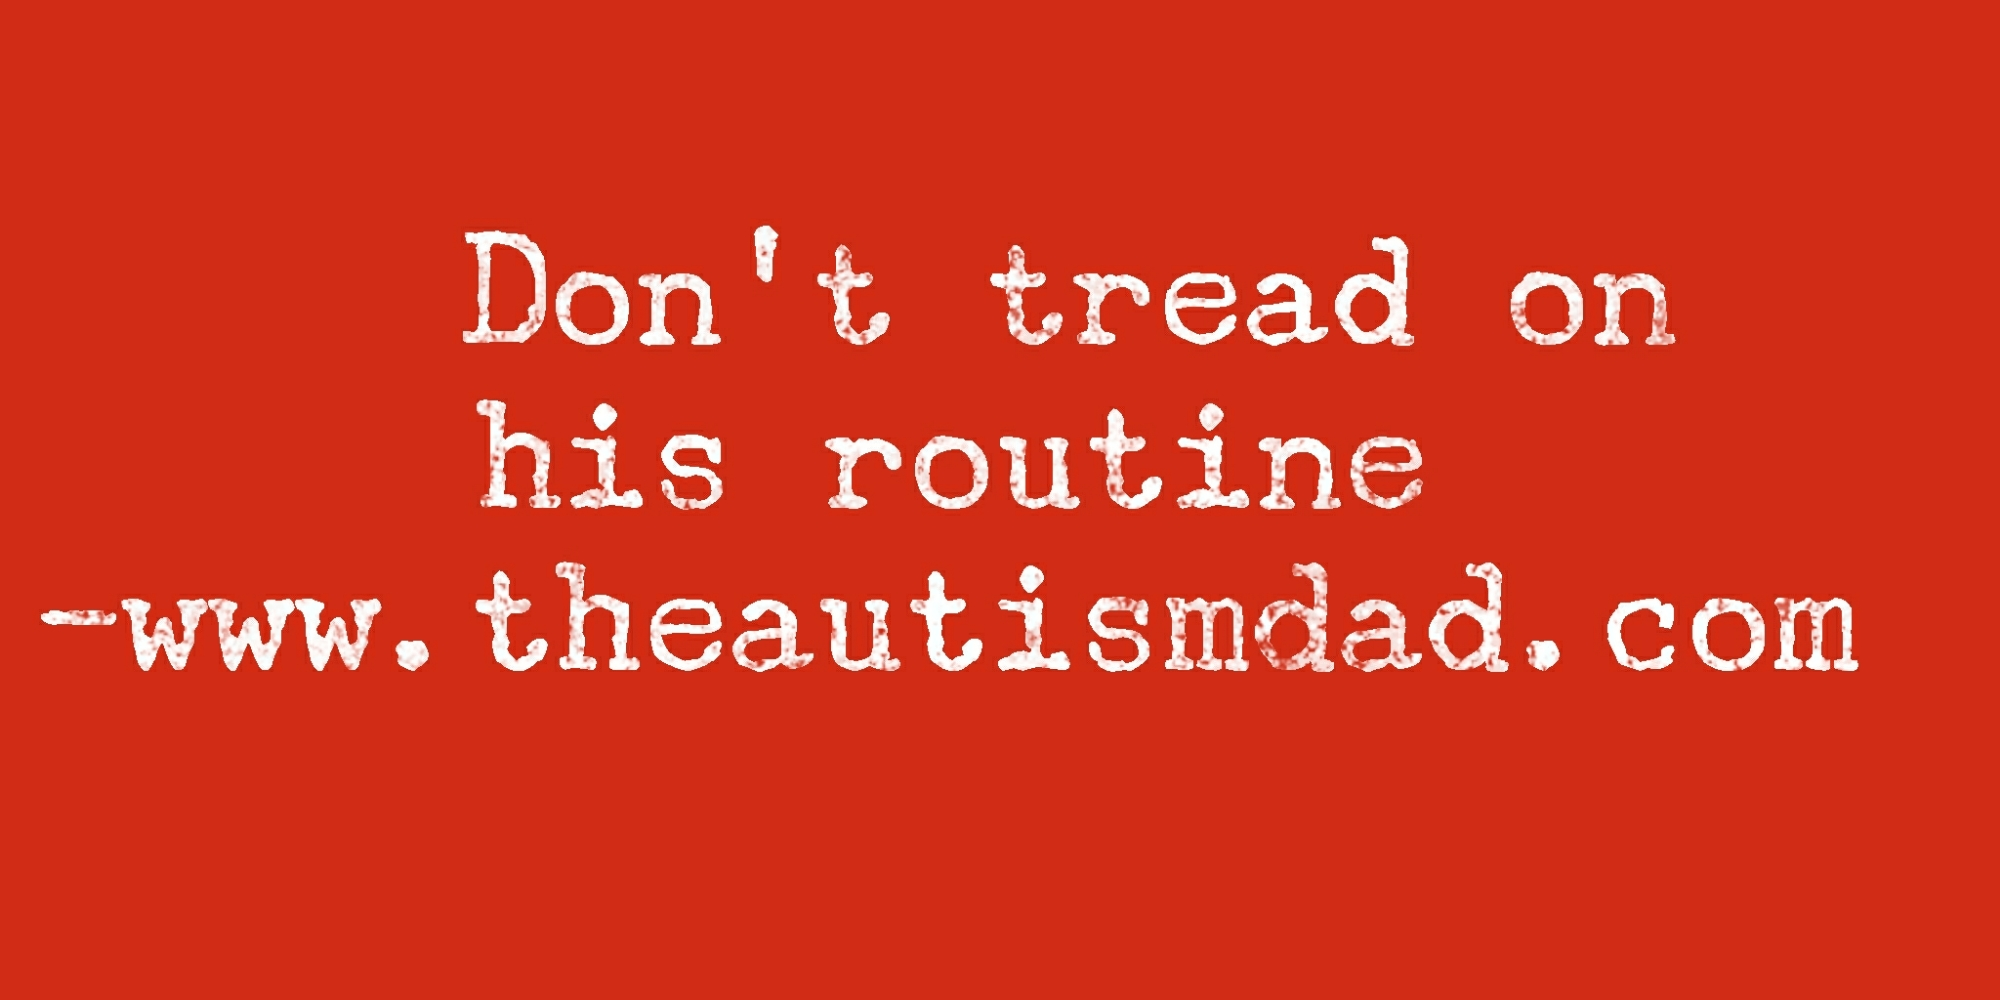 Don't tread on his routine